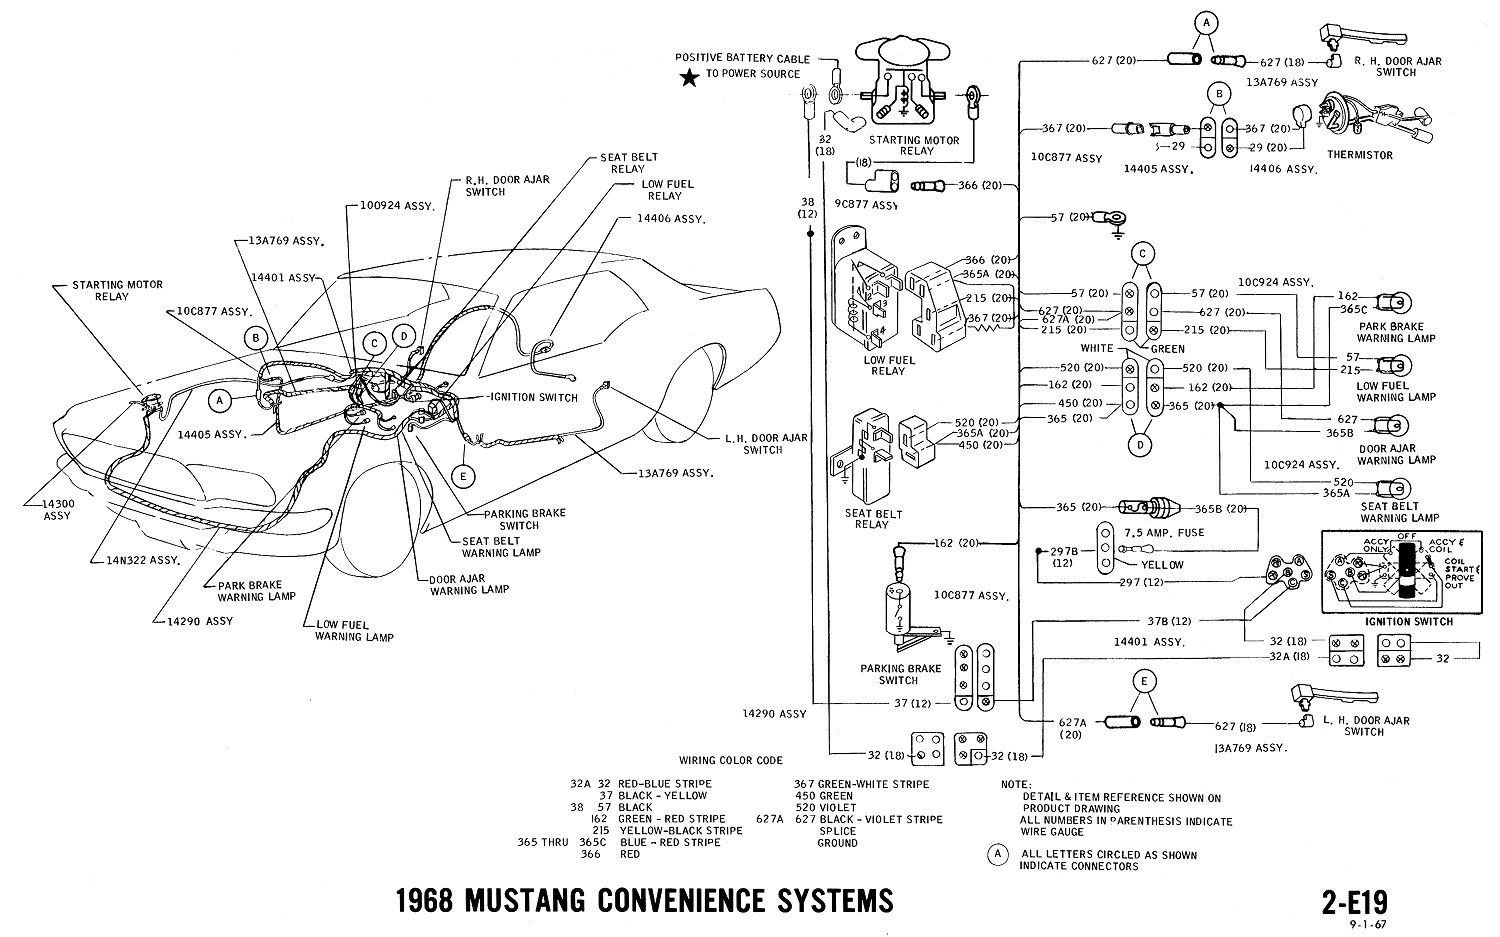 1968 Mustang Wiring Diagrams And Vacuum Schematics Average Joe. Wiring. 1969 Mustang Engine Vacuum Diagram At Scoala.co